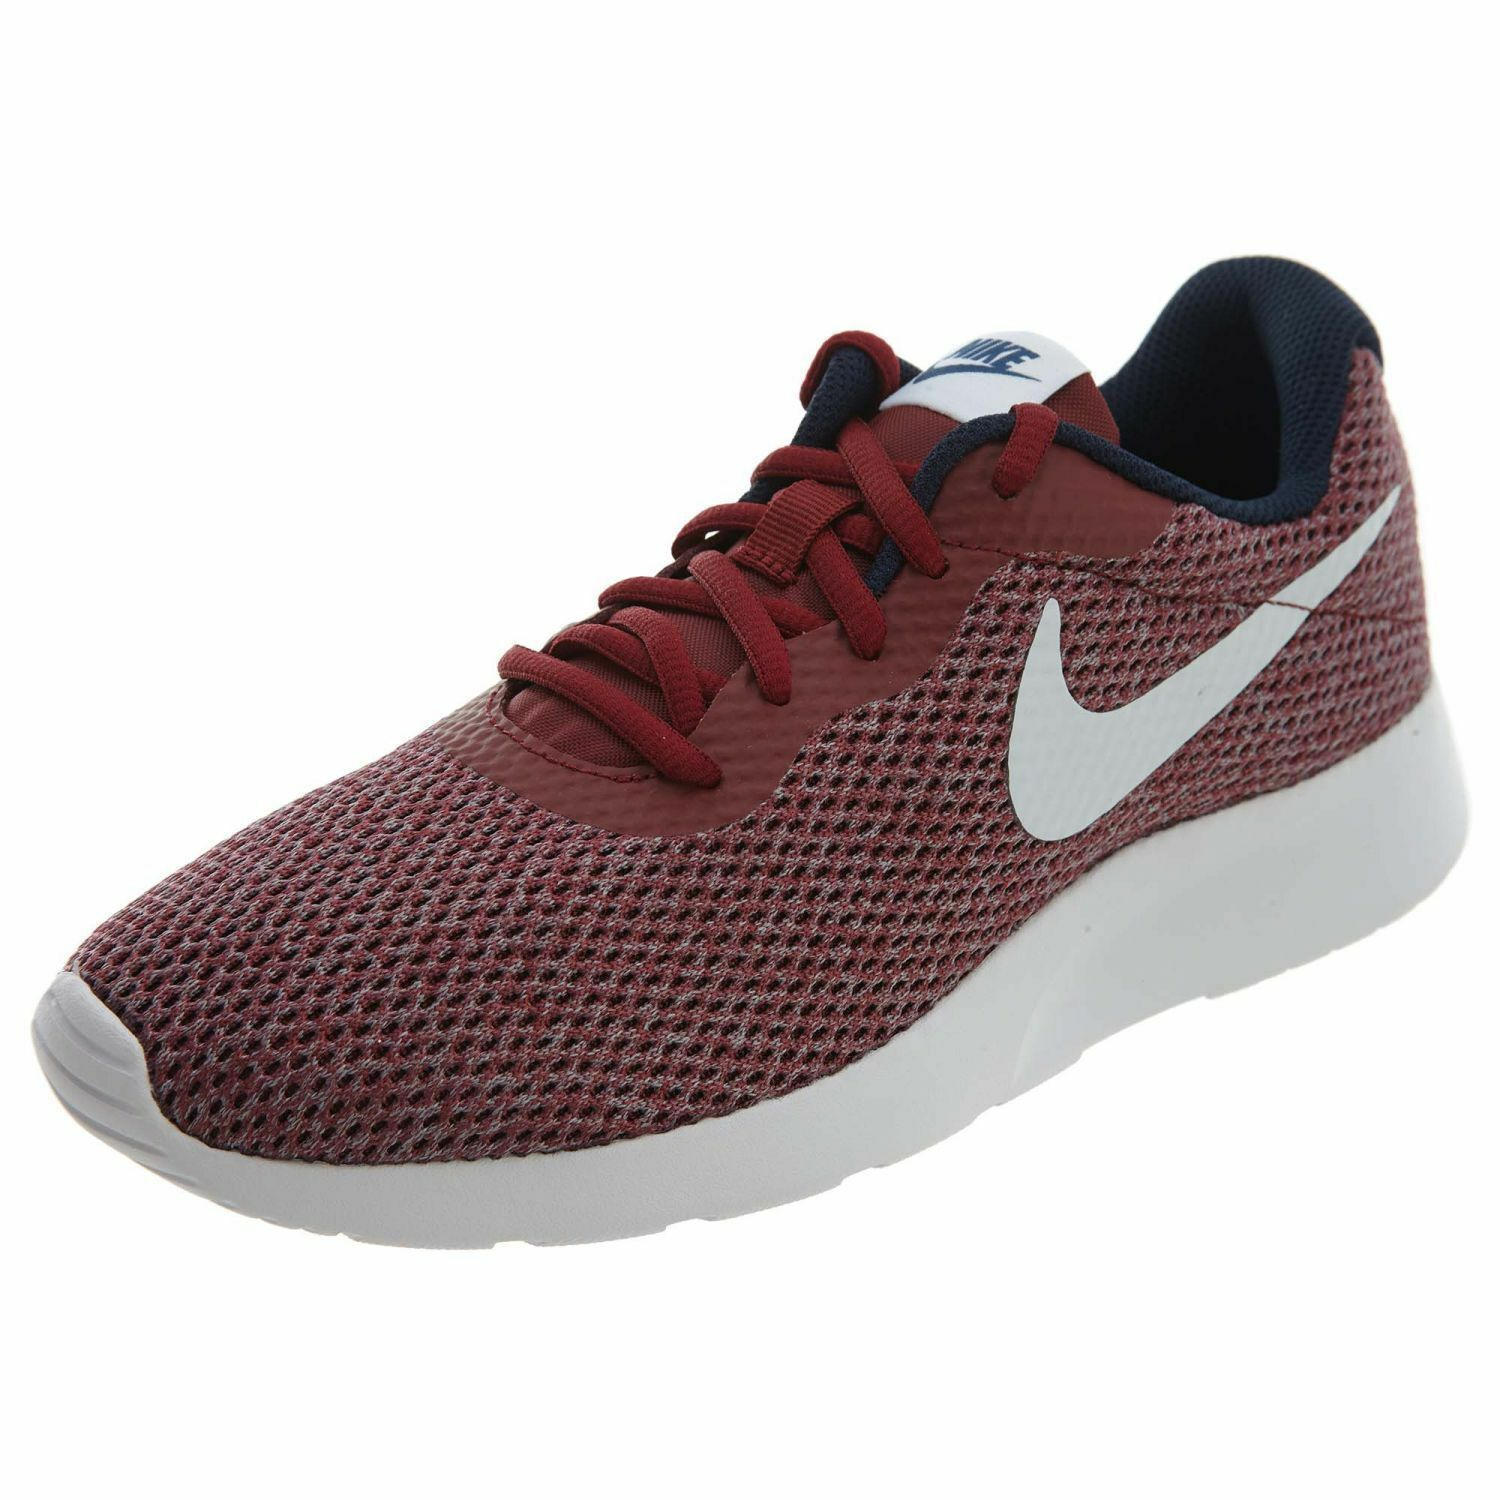 NIKE TANJUN SPECIAL ADDITION LOW SNEAKERS SNEAKERS SNEAKERS MEN SHOES RED 44887-602 SIZE 9.5 NEW b072c9